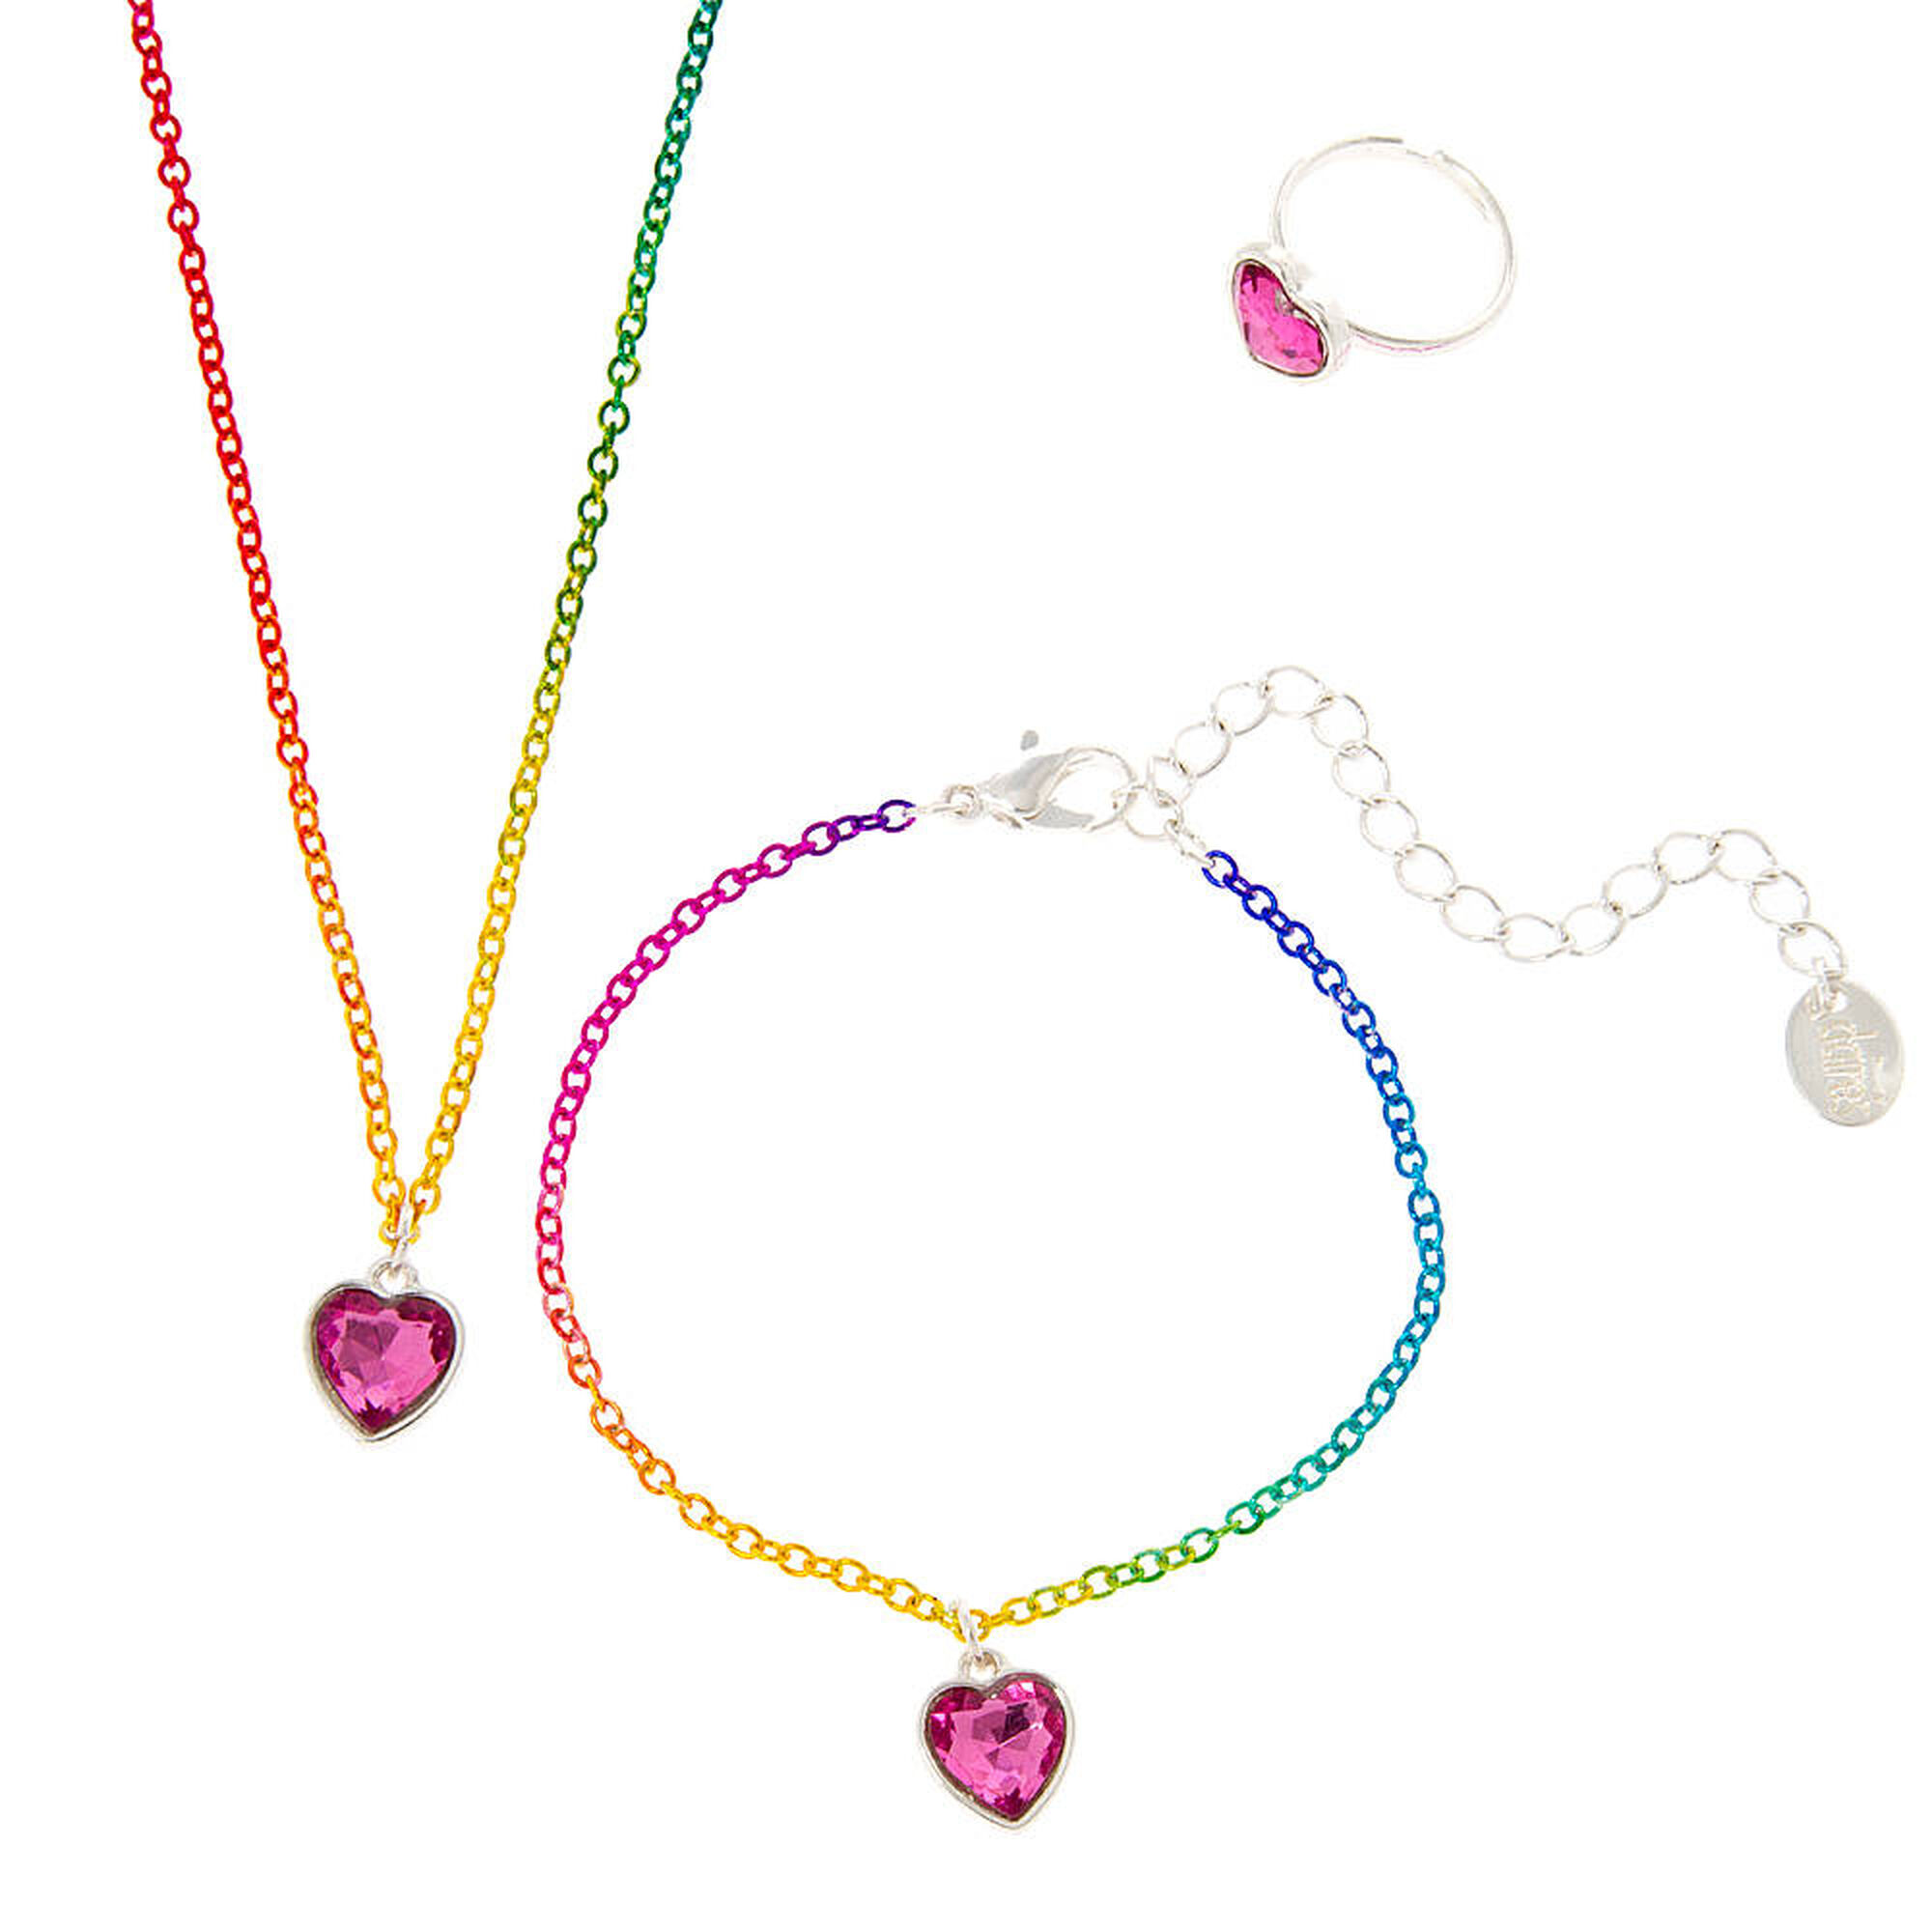 Kids pink crystal heart pendant necklace bracelet and ring set kids pink crystal heart pendant necklace bracelet and ring set aloadofball Image collections